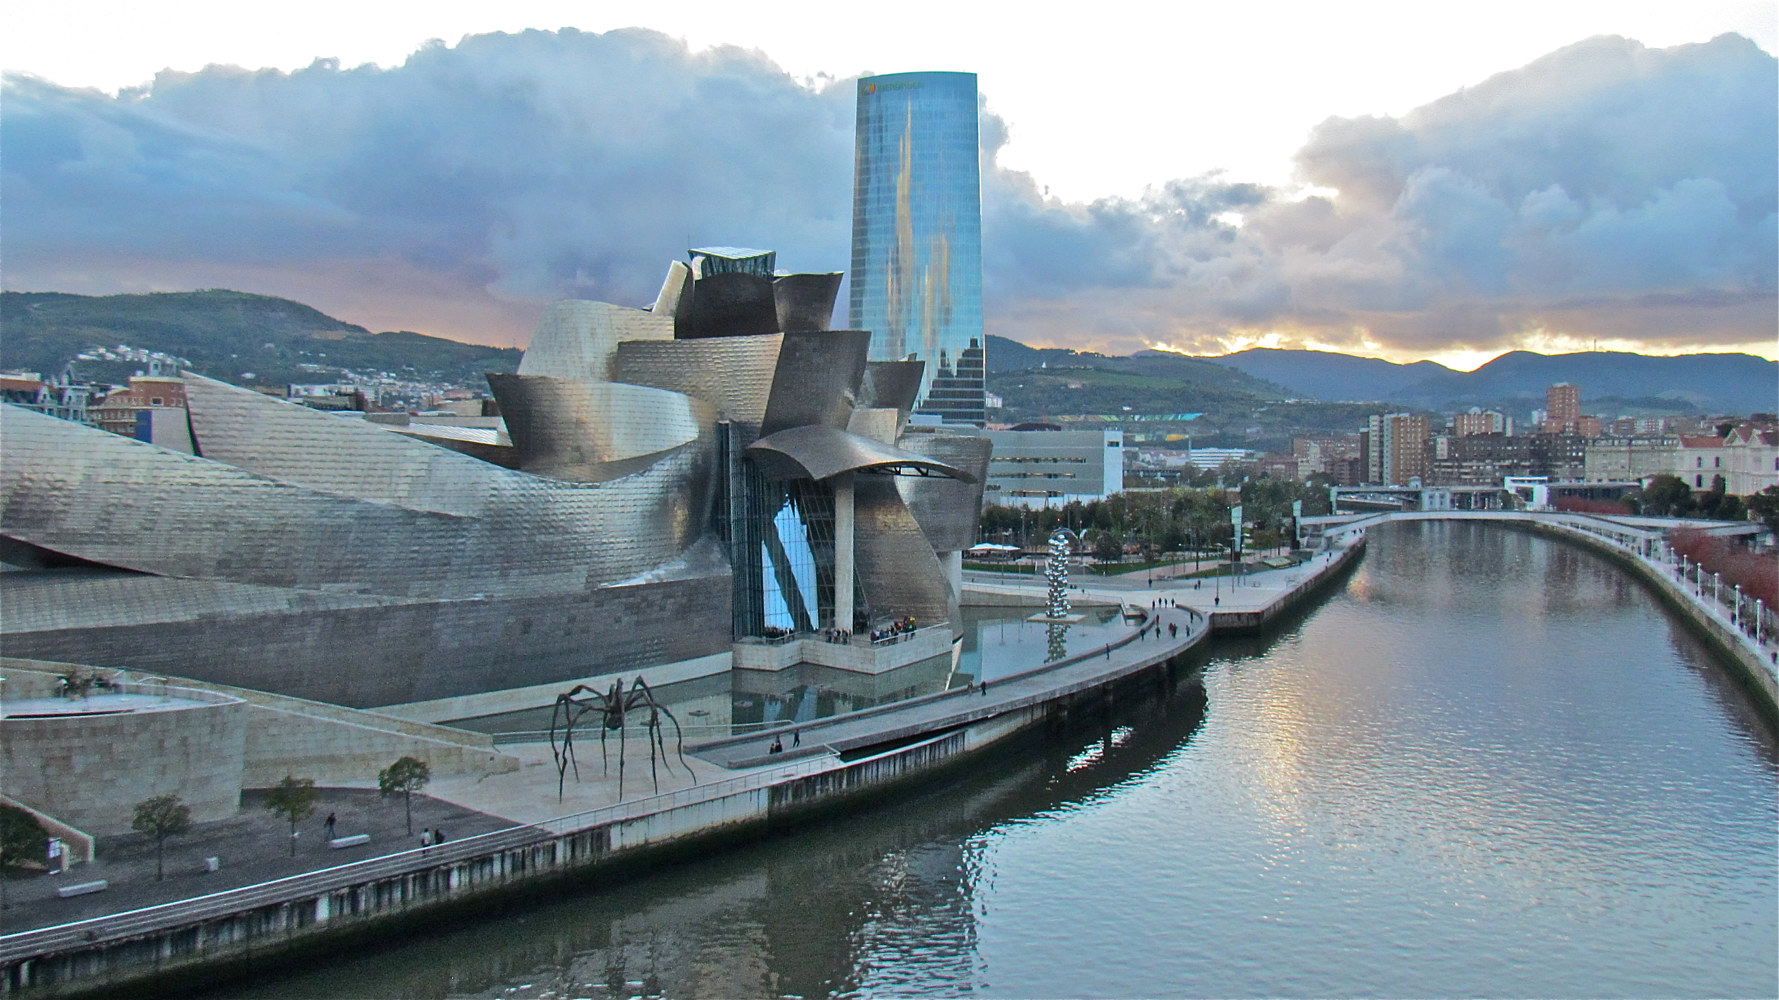 GUGGENHEIM, BILBAO, SPAIN by Joeann Edmonds-Matthew